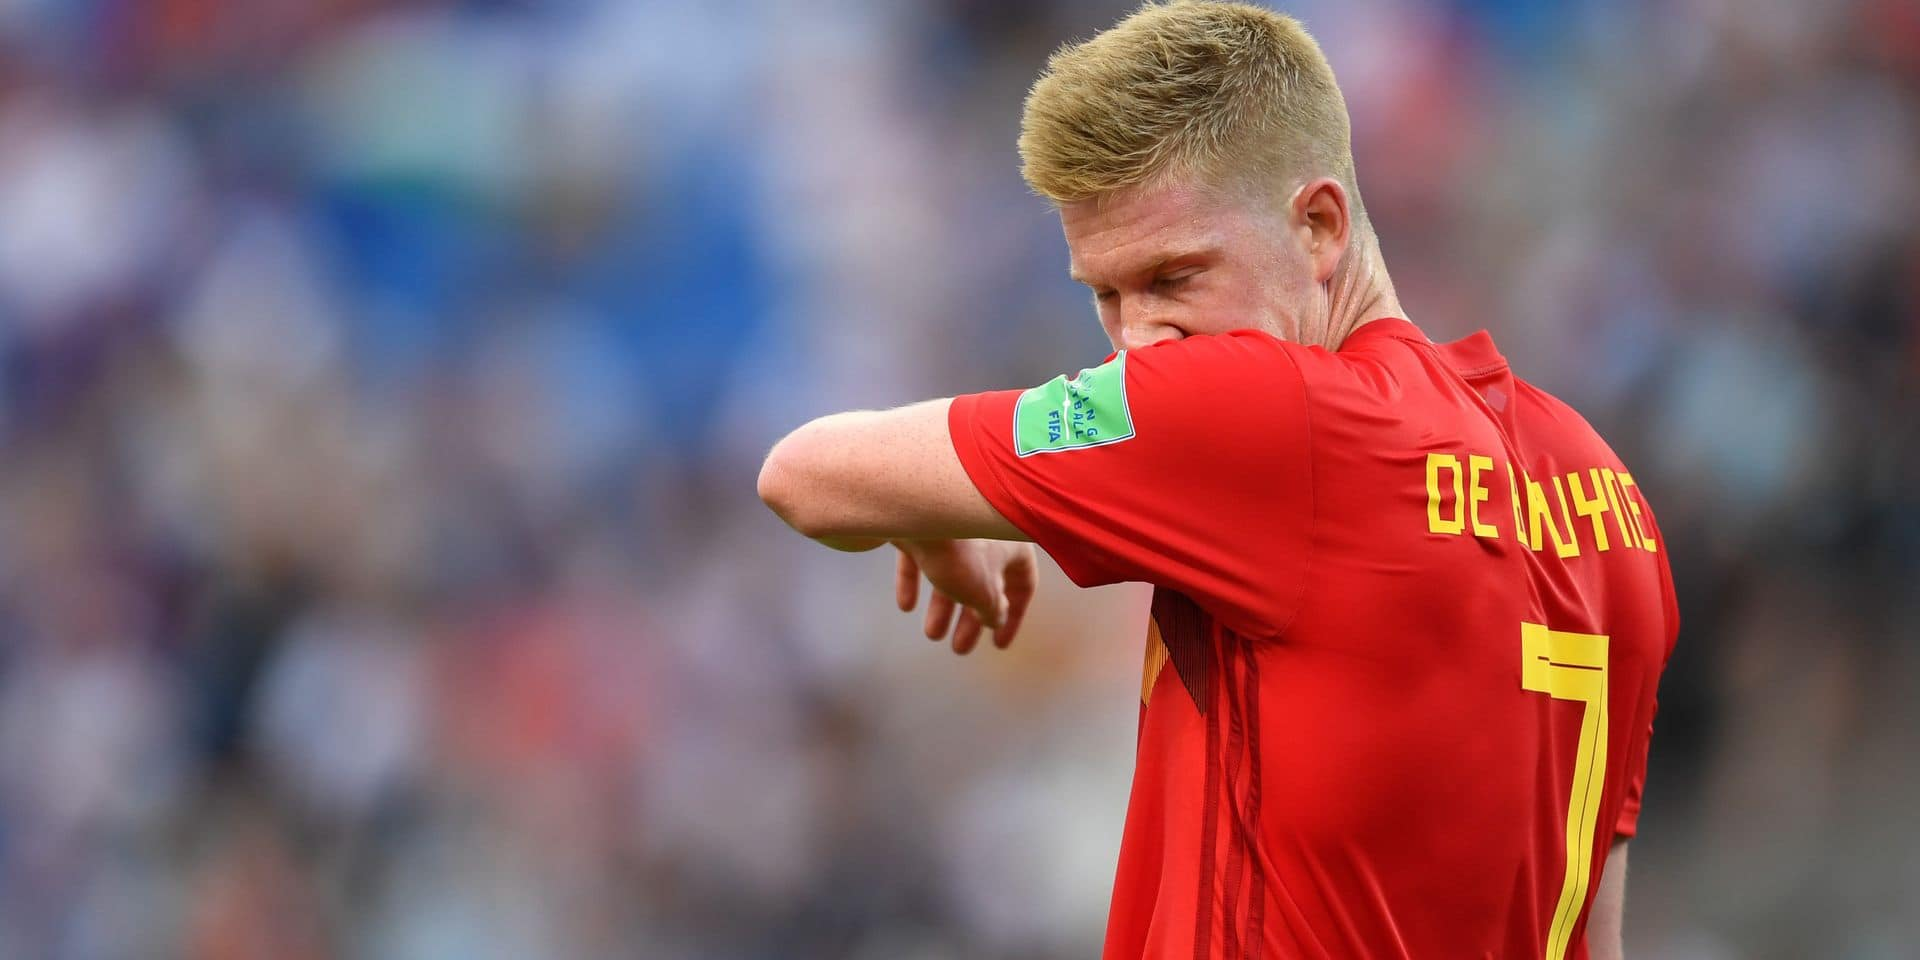 18 June 2018, Russia, Sochi: Soccer: World Cup, preliminary stage, Group G: Belgium vs Panama in the Sochi Stadium. Belgium's Kevin de Bruyne during the match. Photo: Marius Becker/dpa Reporters / DPA